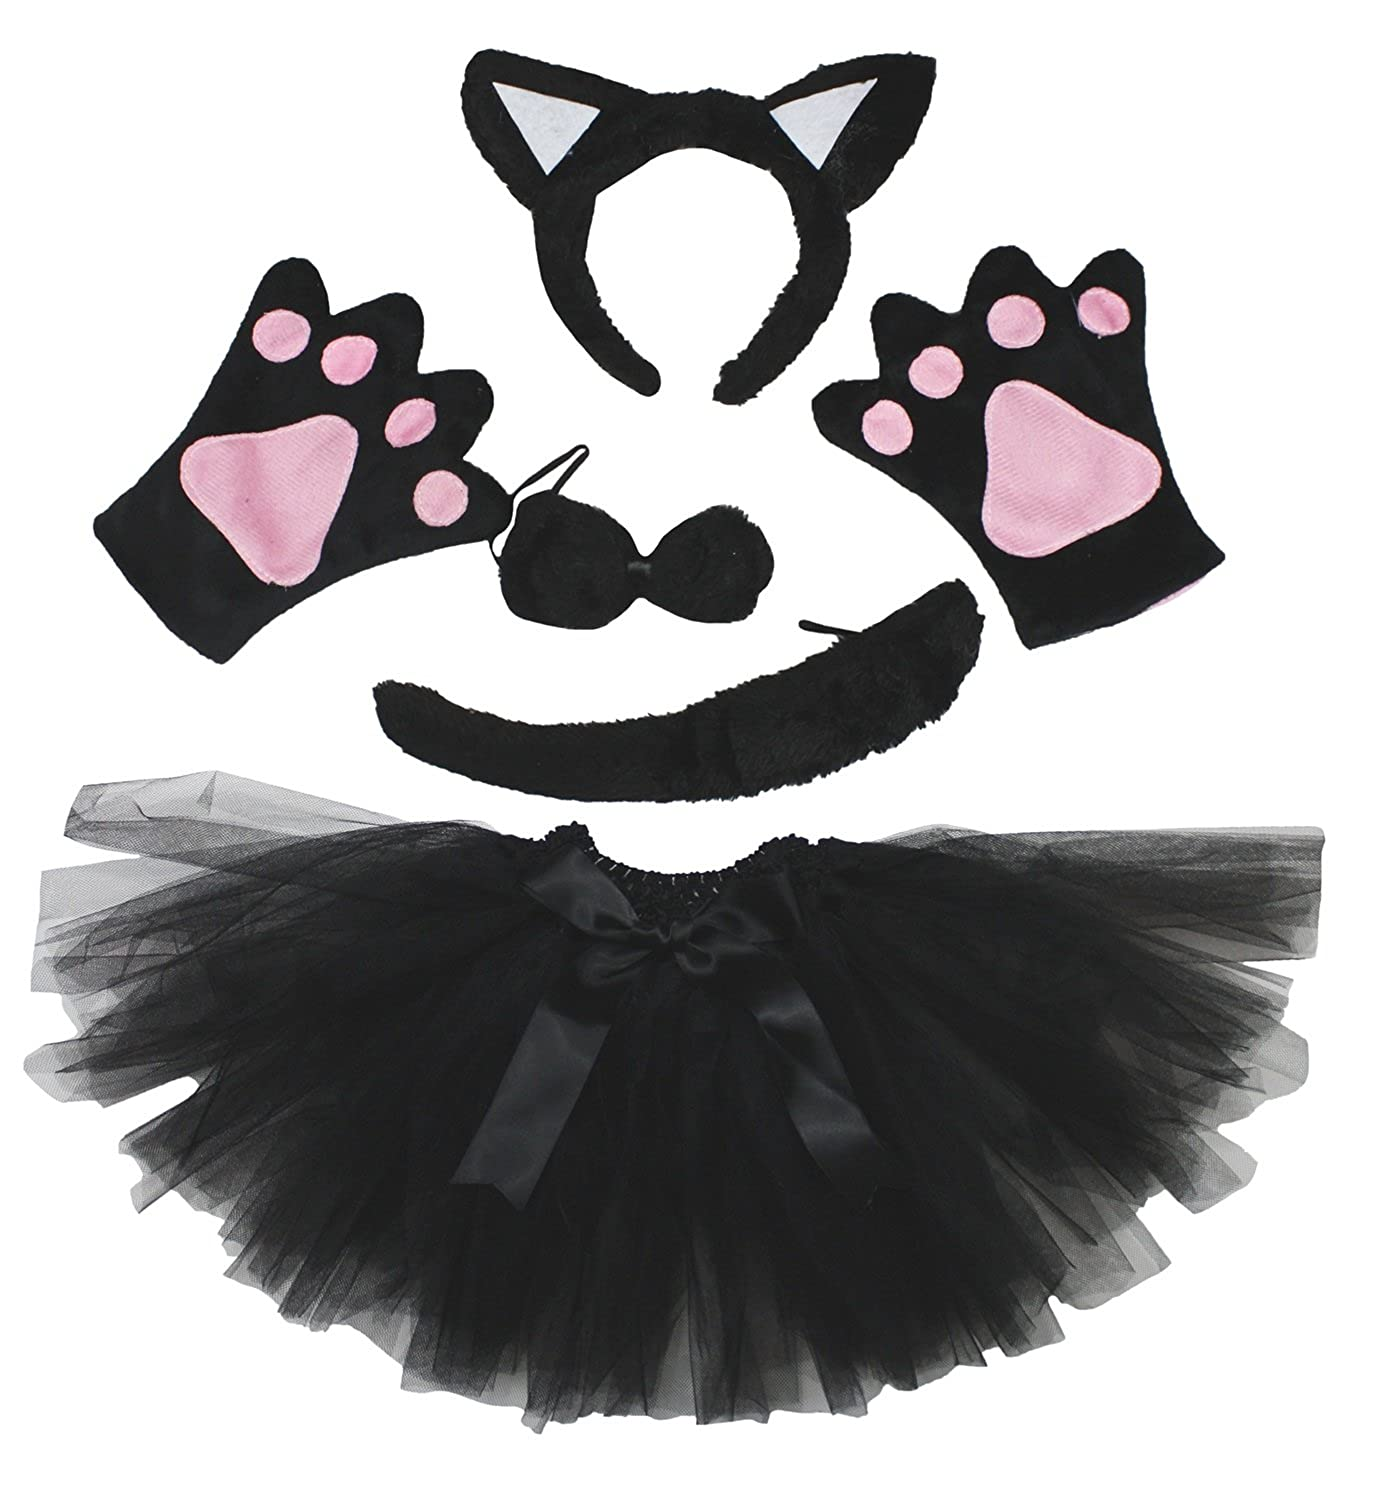 Cat Headband Bowtie Tail Gloves Black Tutu 5pc Girl Costume Dress for Party